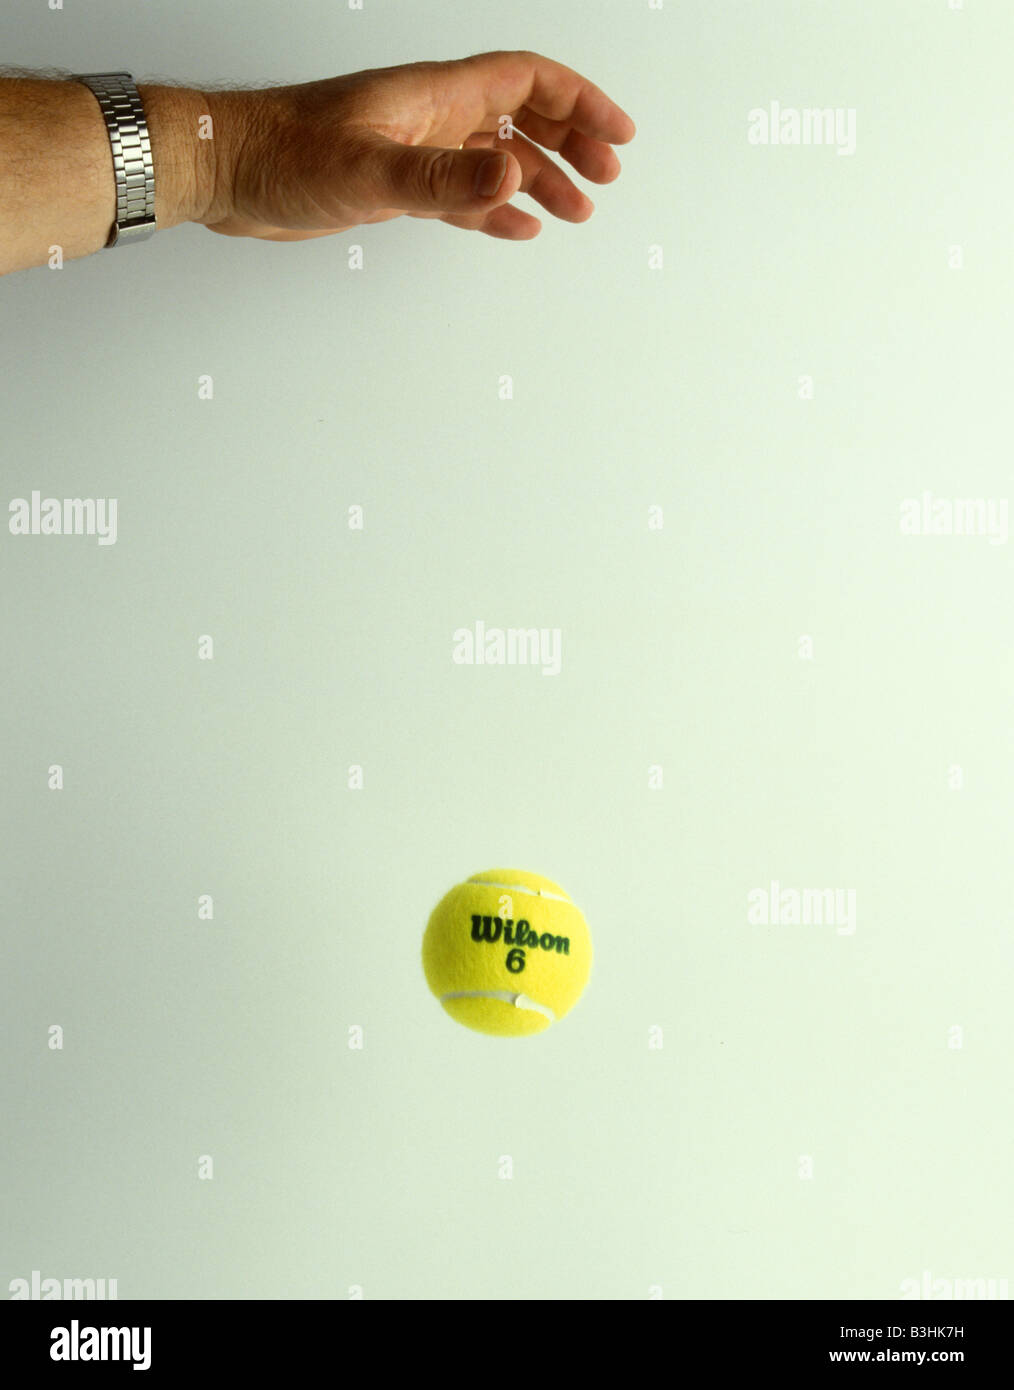 a tennis ball being dropped - Stock Image